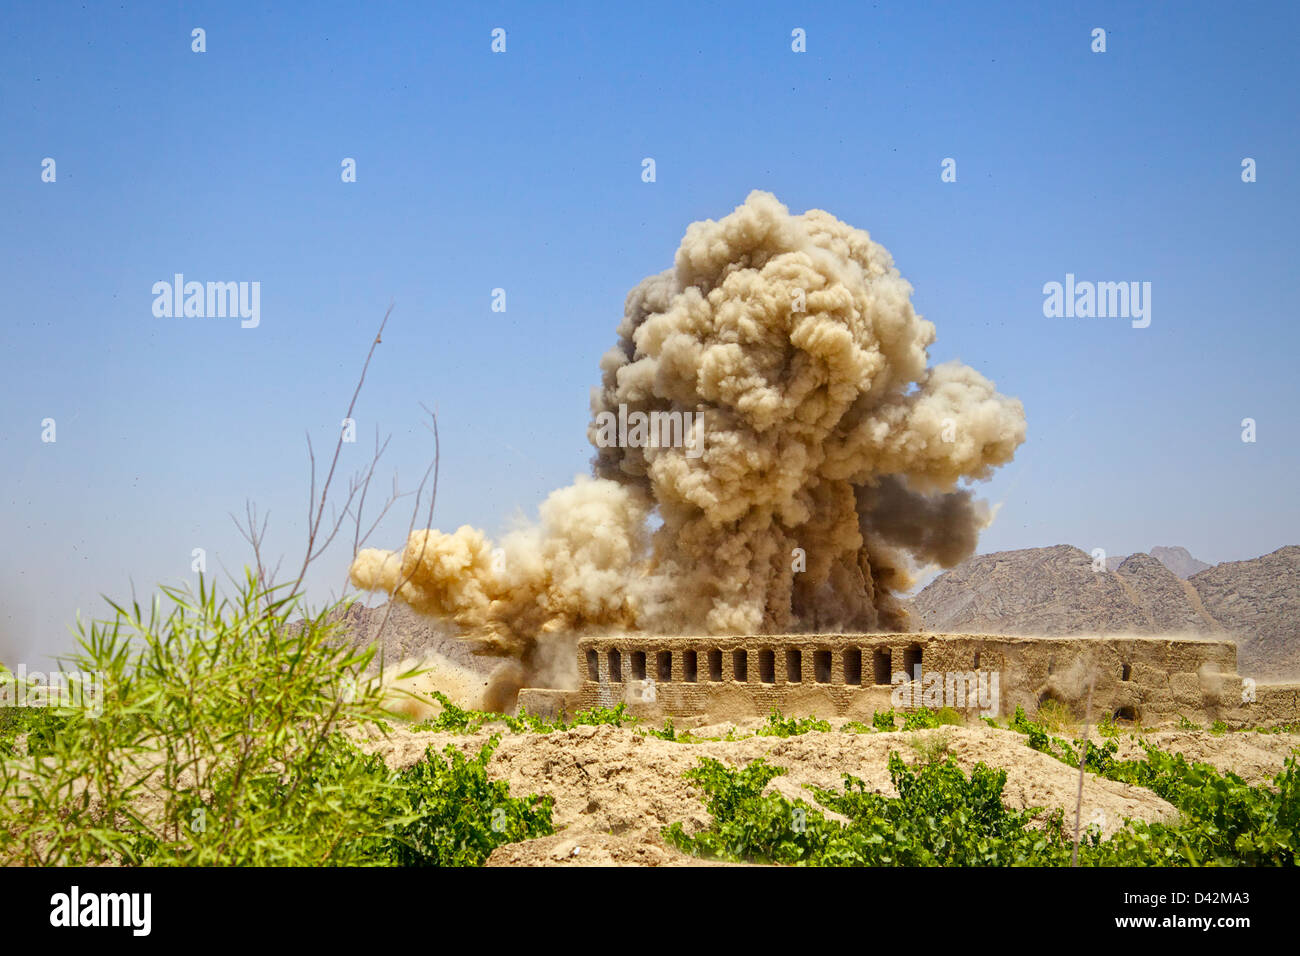 International Security Assistance Force soldiers detonate a set of Improvised Explosive Devices found along a path. - Stock Image